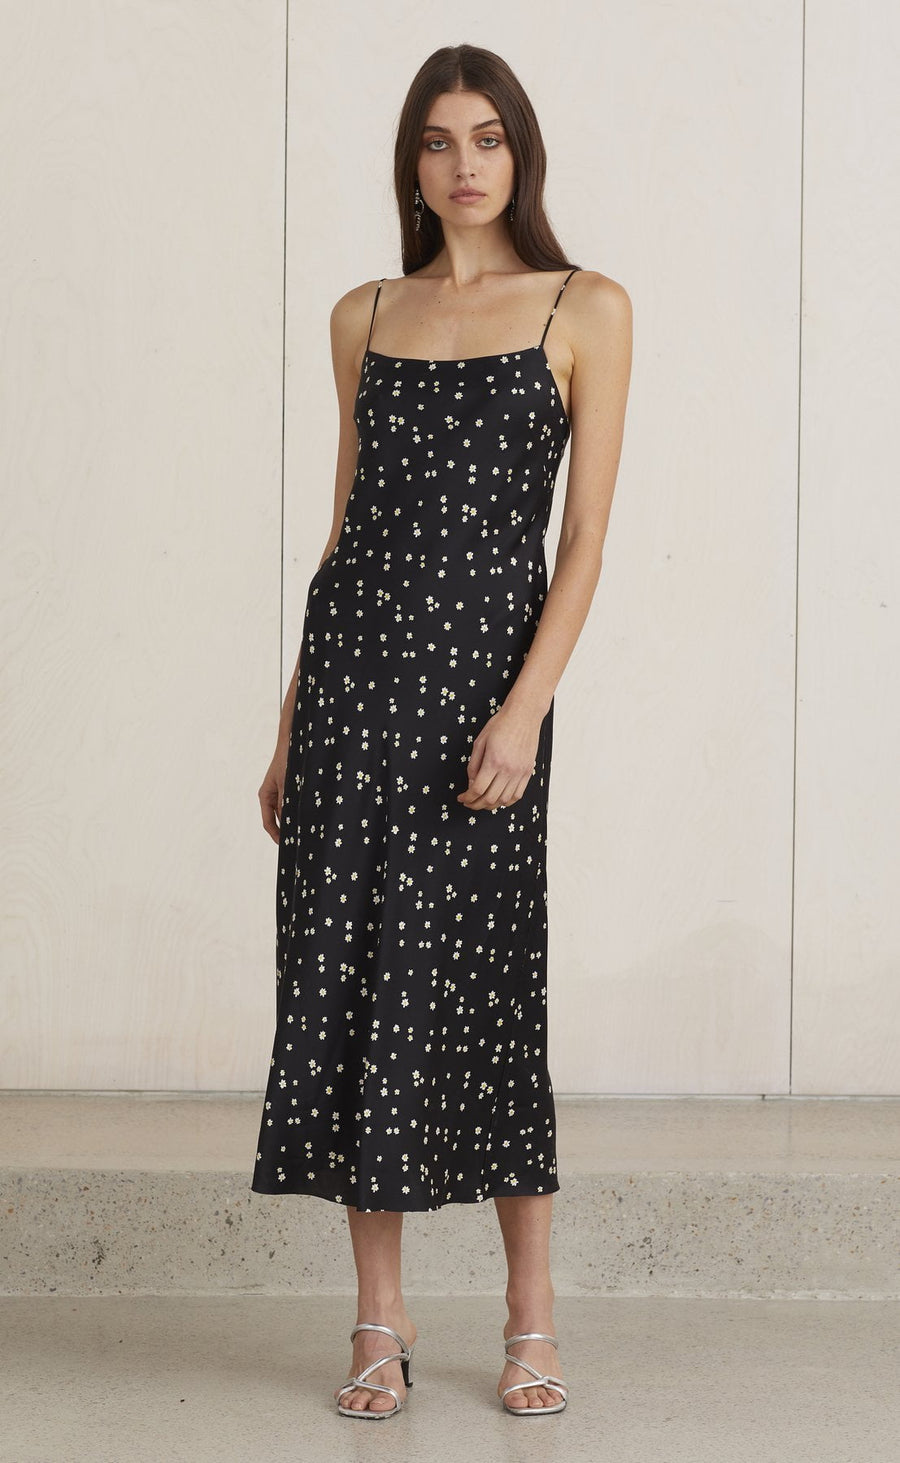 Bec and Bridge miss Daisy Slip Midi Dress